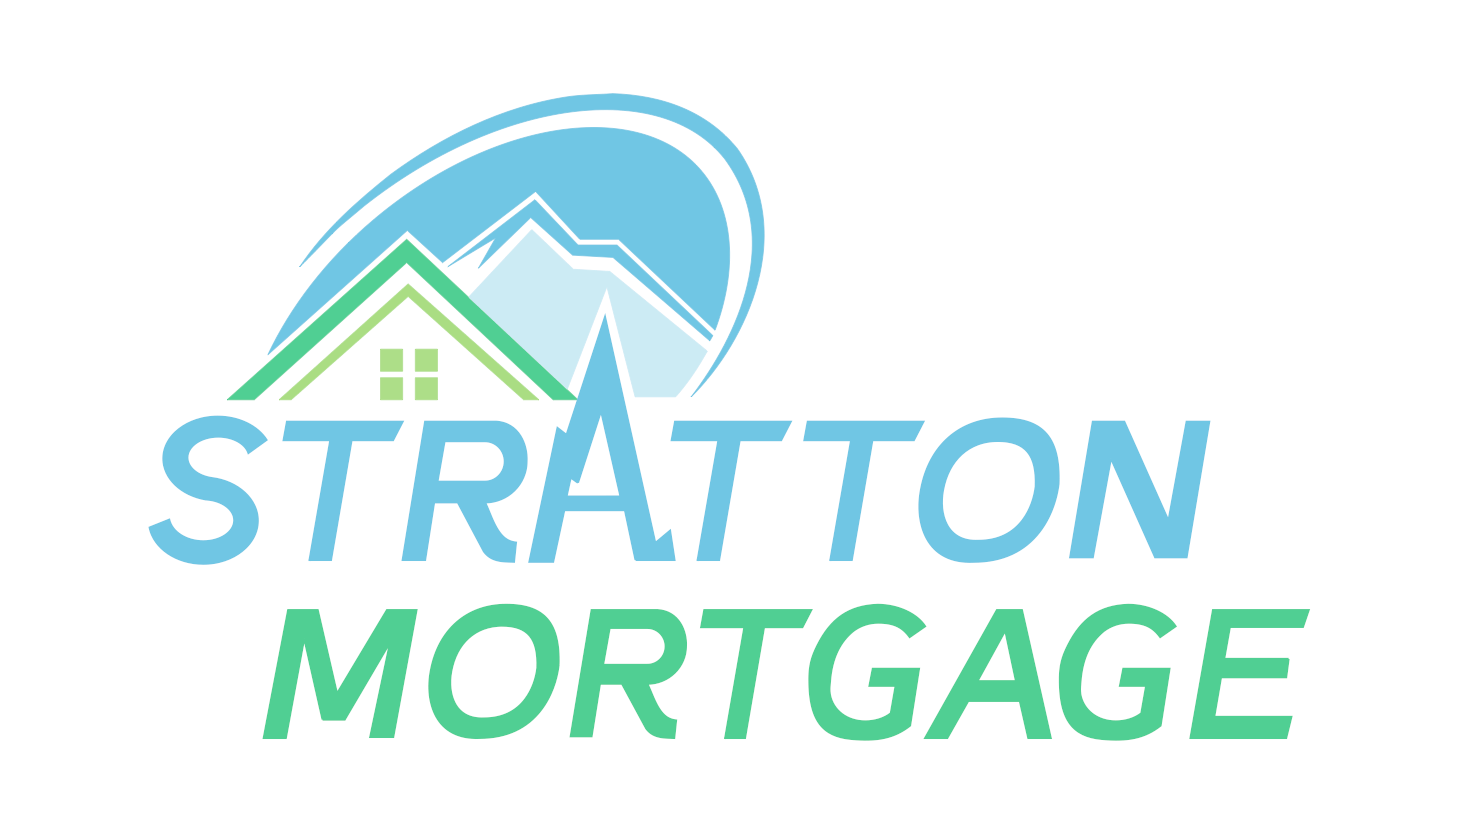 Stratton Mortgage, LLC Refinance | Get Low Mortgage Rates